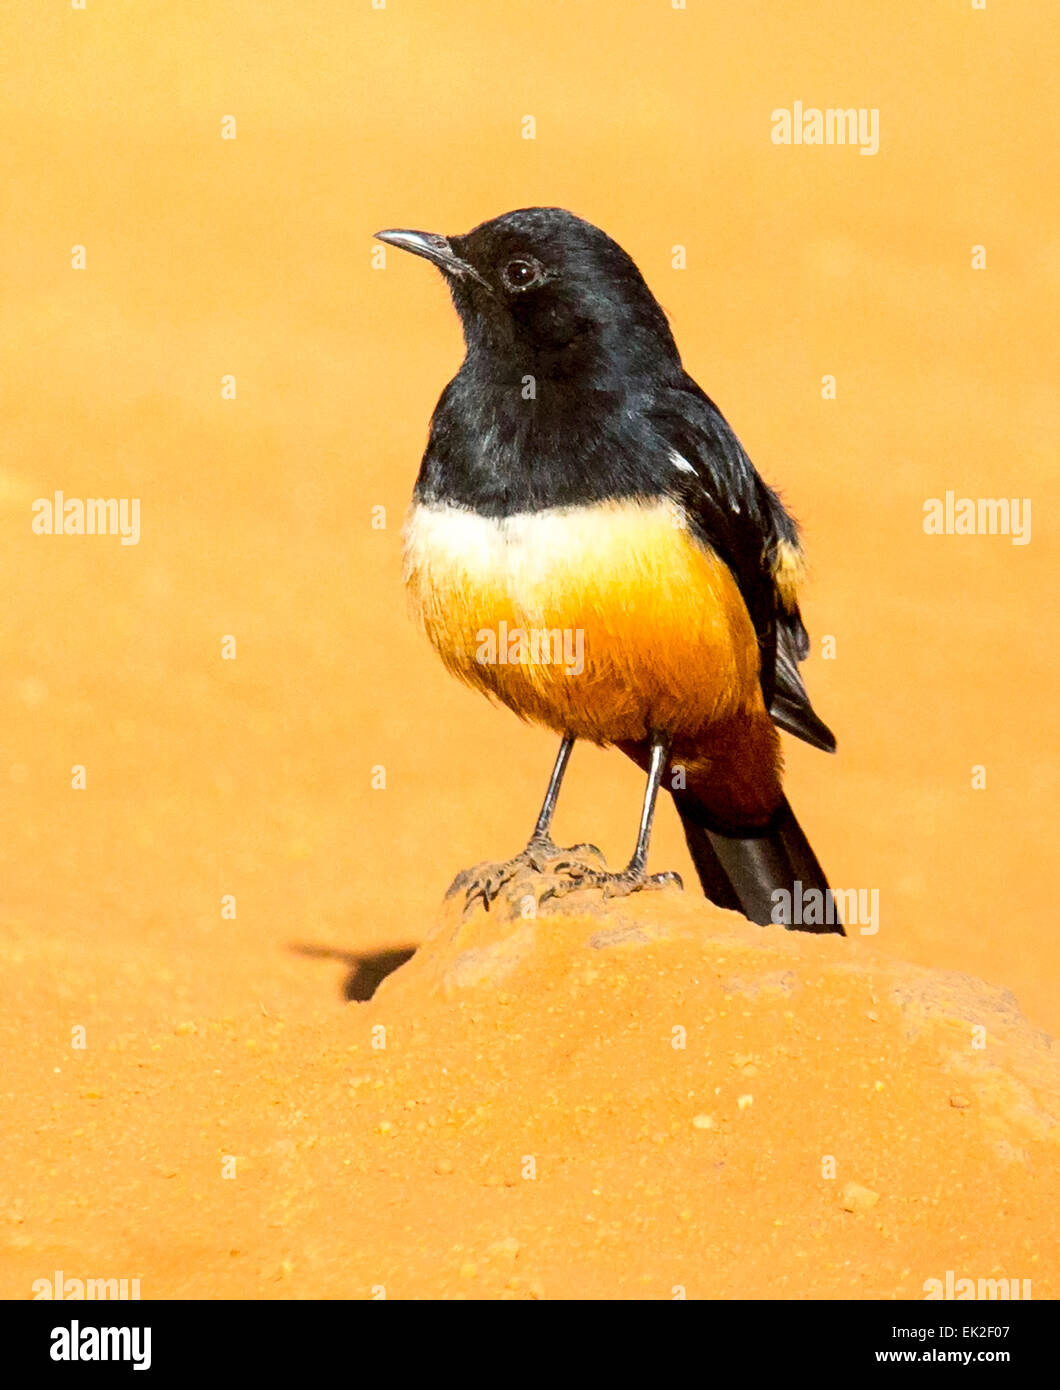 Male Mocking Chat (Thamnolaea cinnamomeiventris) in  Pilanesberg National Park, South Africa. - Stock Image